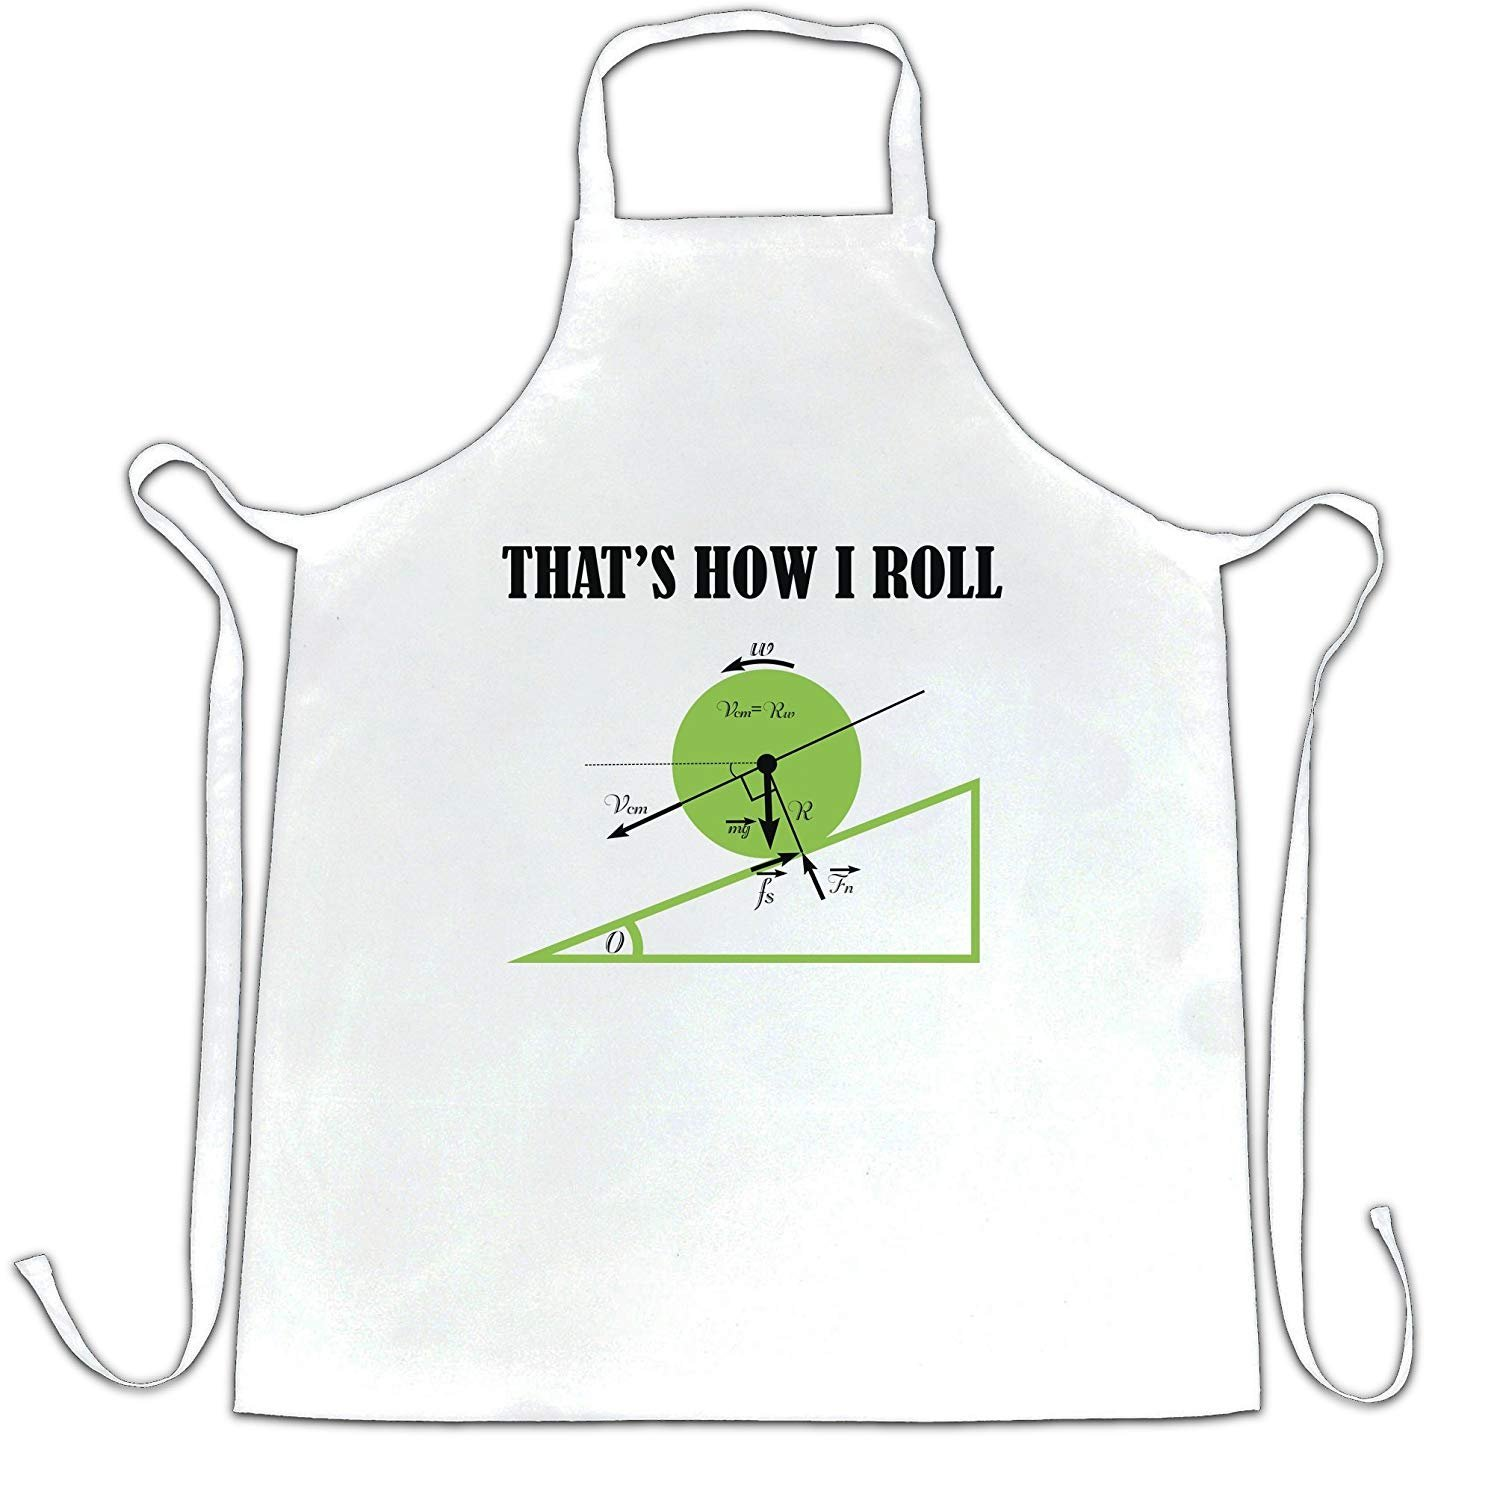 That's How I Roll Funny Geeky Math Design Printed Physics Novelty Just Nerd Teacher Idea College Student Homework Geometry Core Mathematics Geek Apron Kitchen BBQ Cook Cool Birthday Gift Present